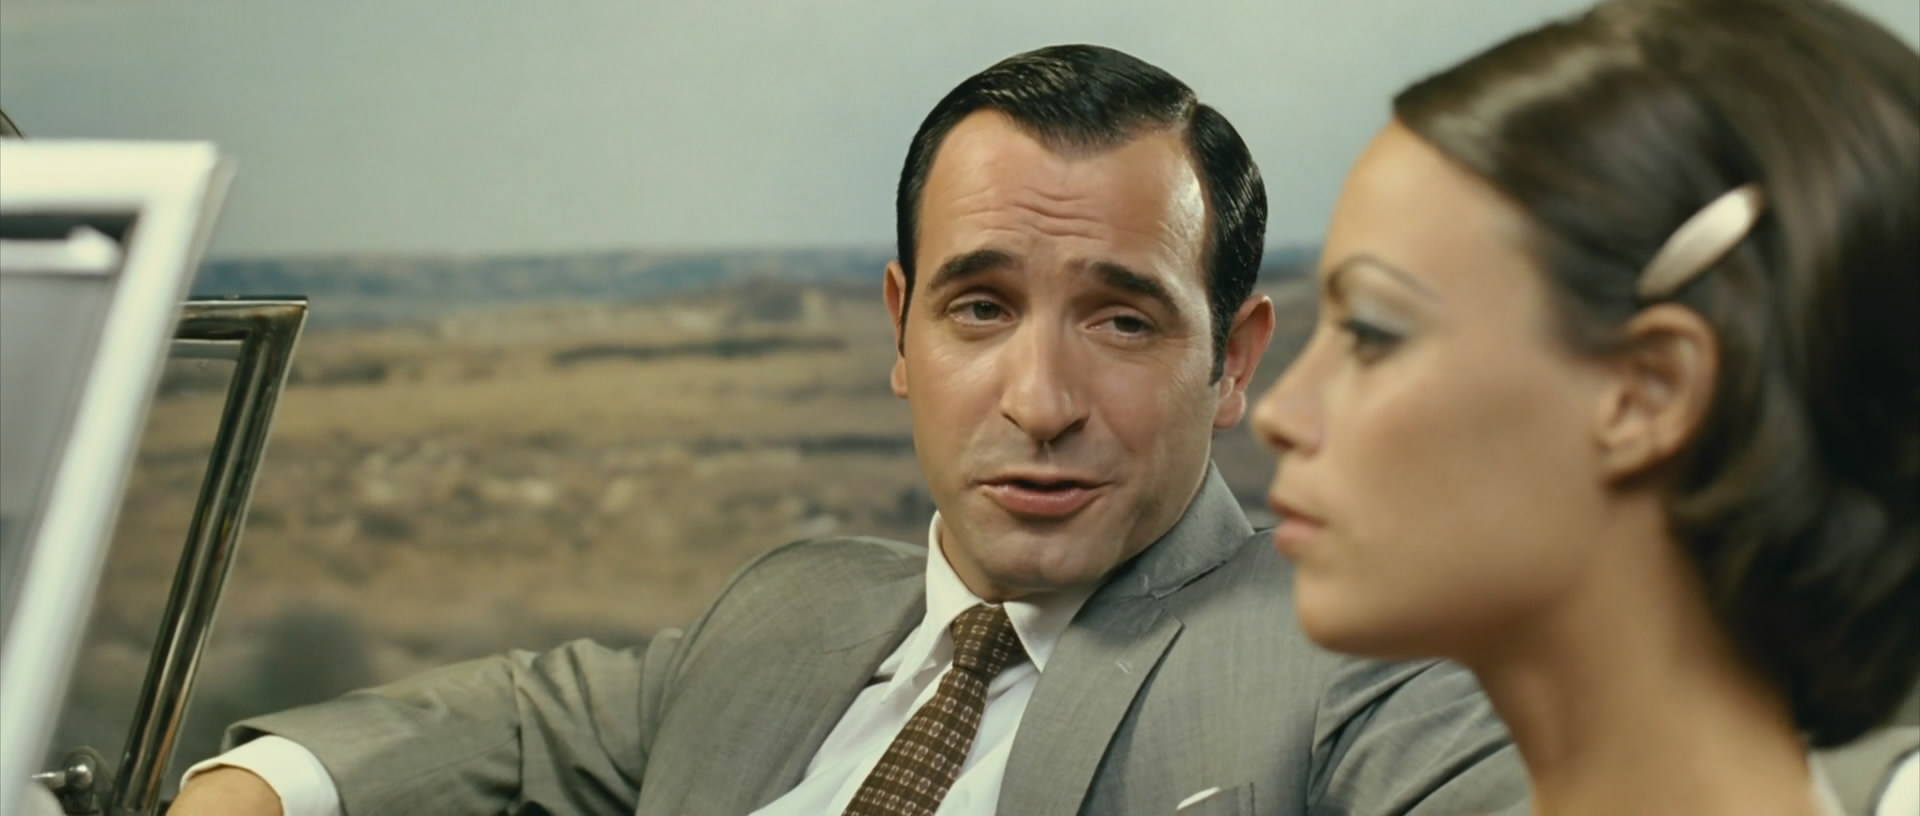 Jean dujardin keith the movies for Film jean dujardin